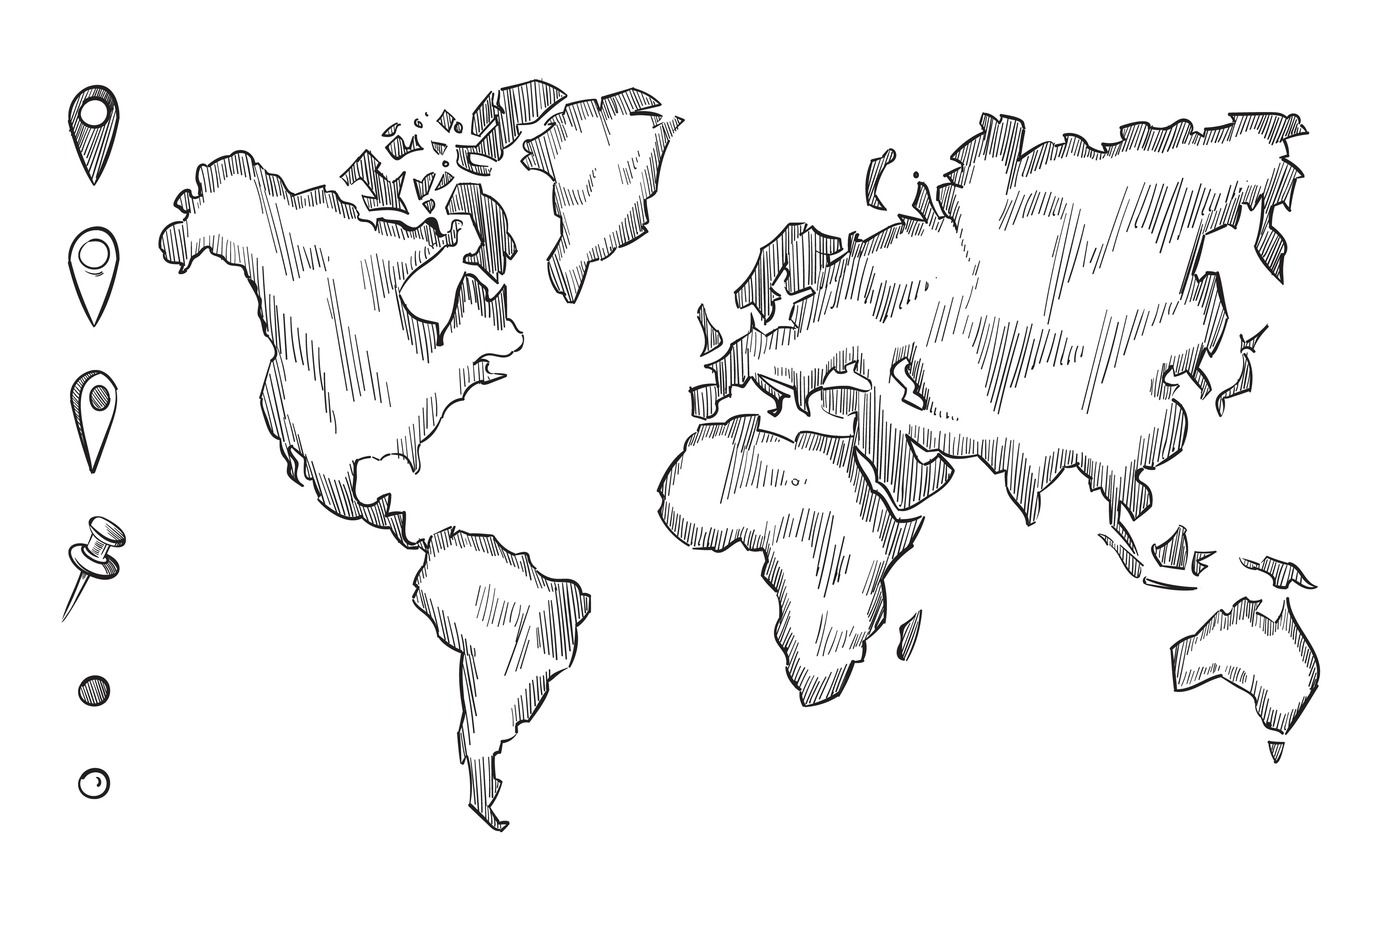 Hand Drawn Rough Sketch World Map With Doodle Pins By Microvector